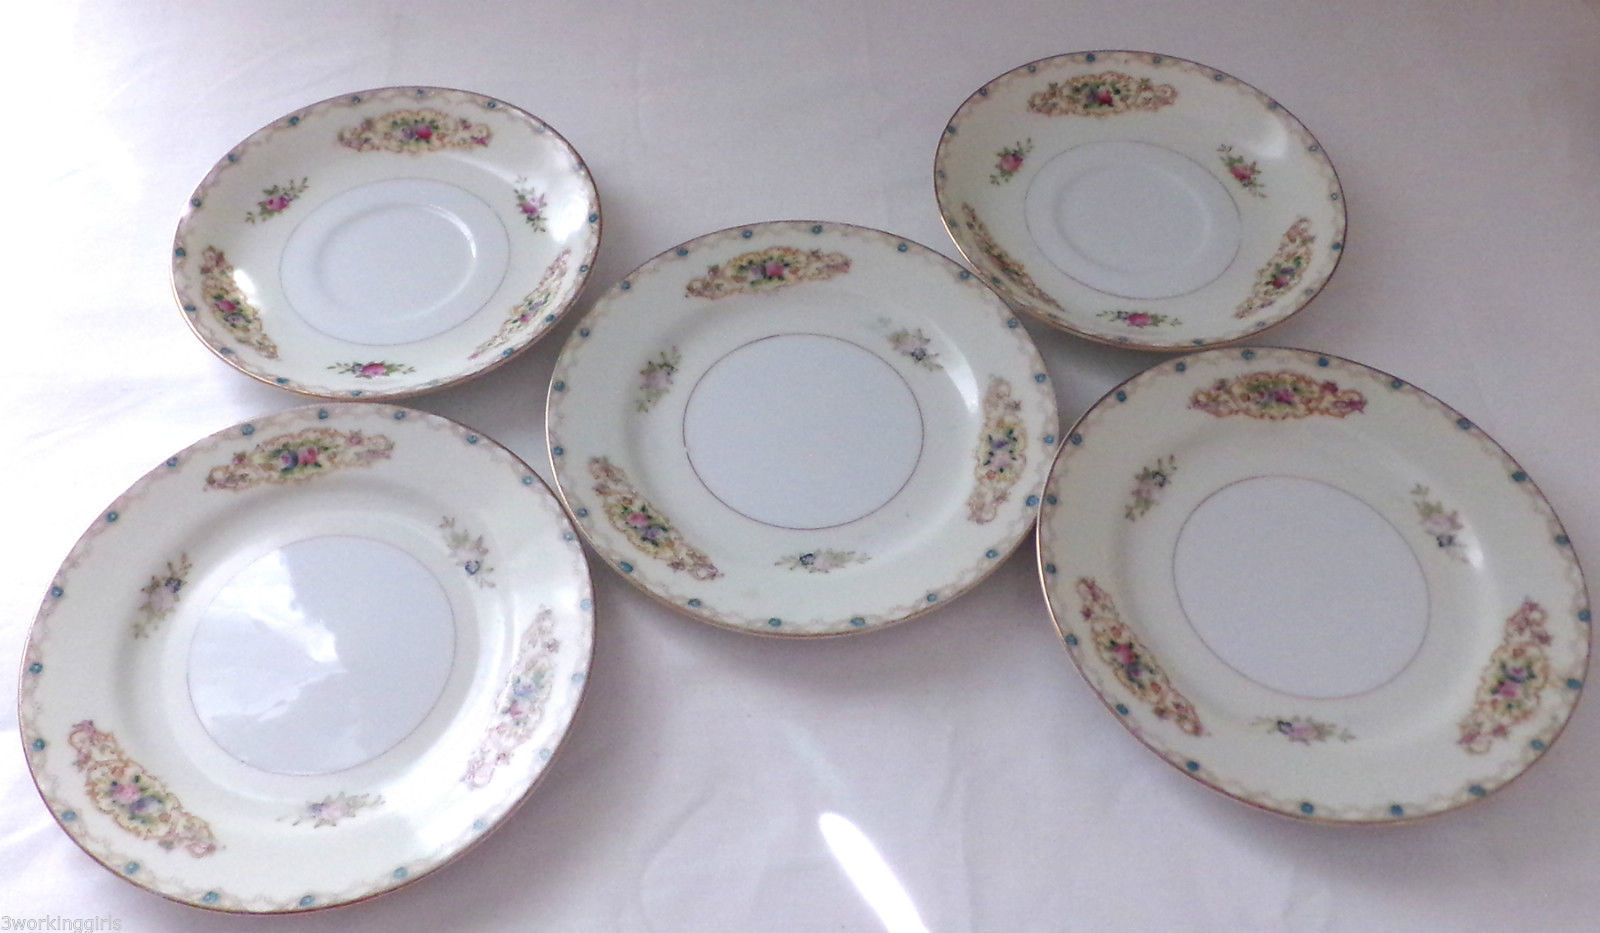 5pc Vintage Imperial China Saucers Plates China Dinnerware 2@ 5 1/2\  3@ 6\  Japan & 5pc Vintage Imperial China Saucers Plates and similar items